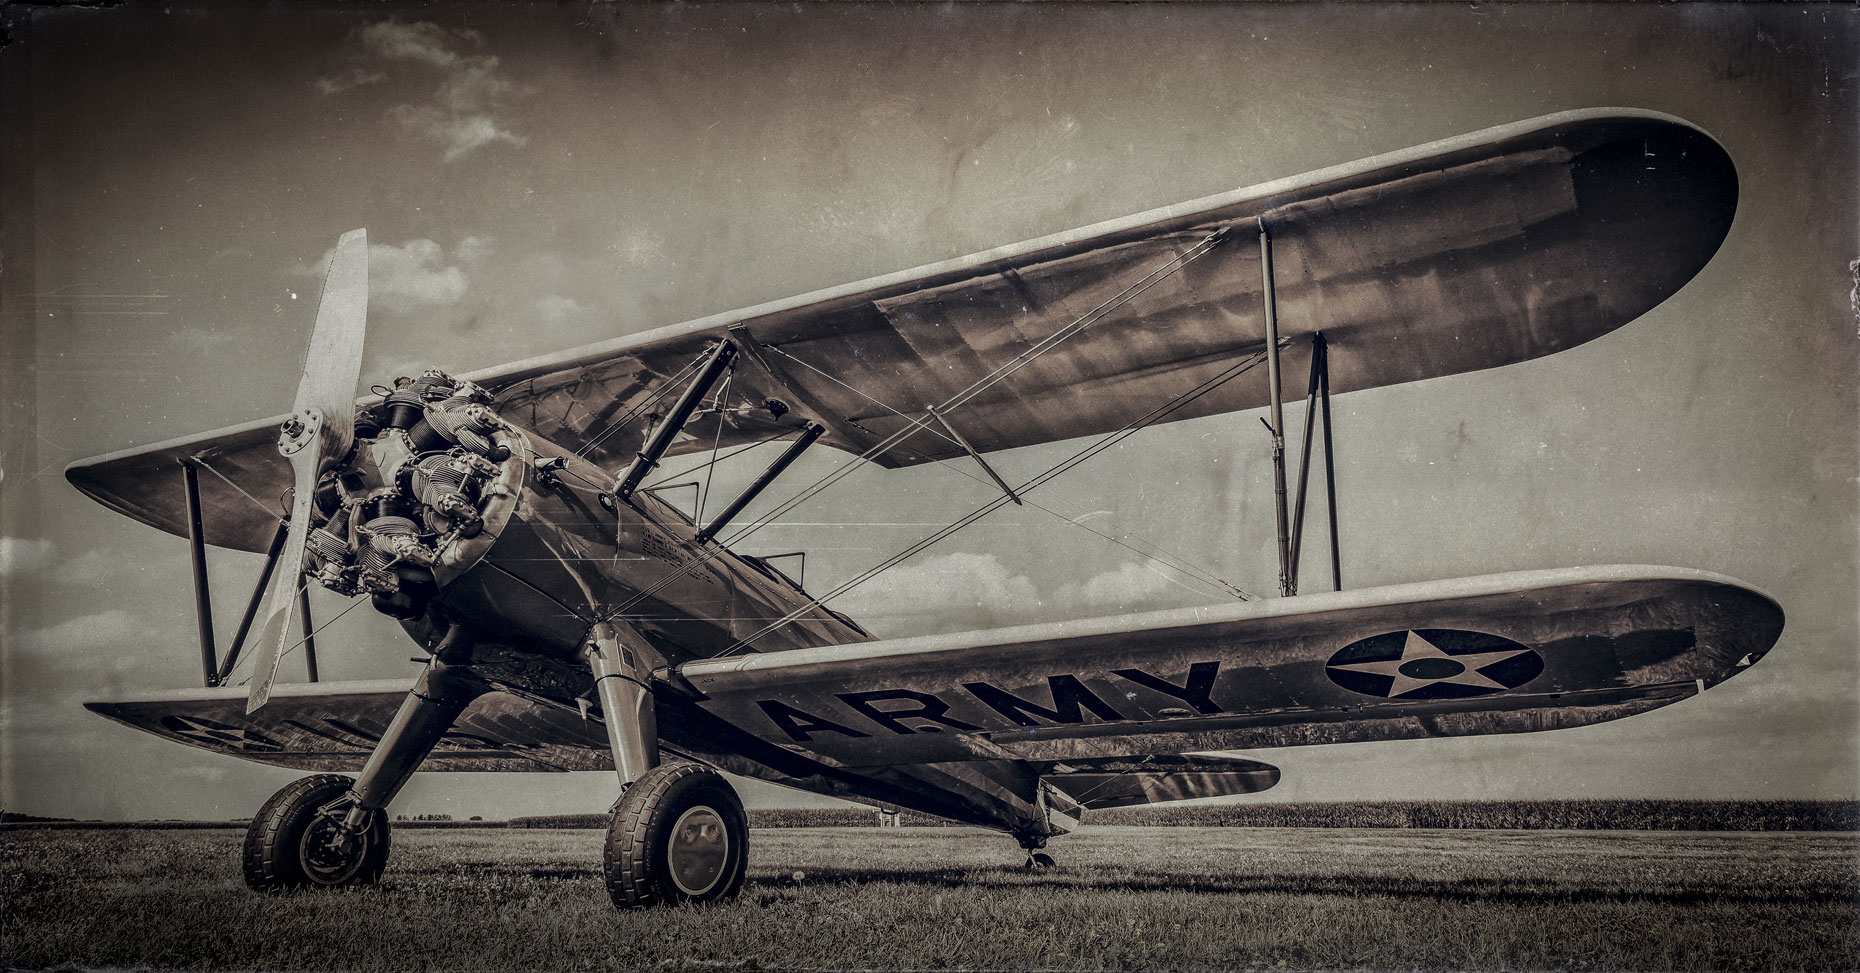 Old biplane/low angle/b&w/grass/aviation photography